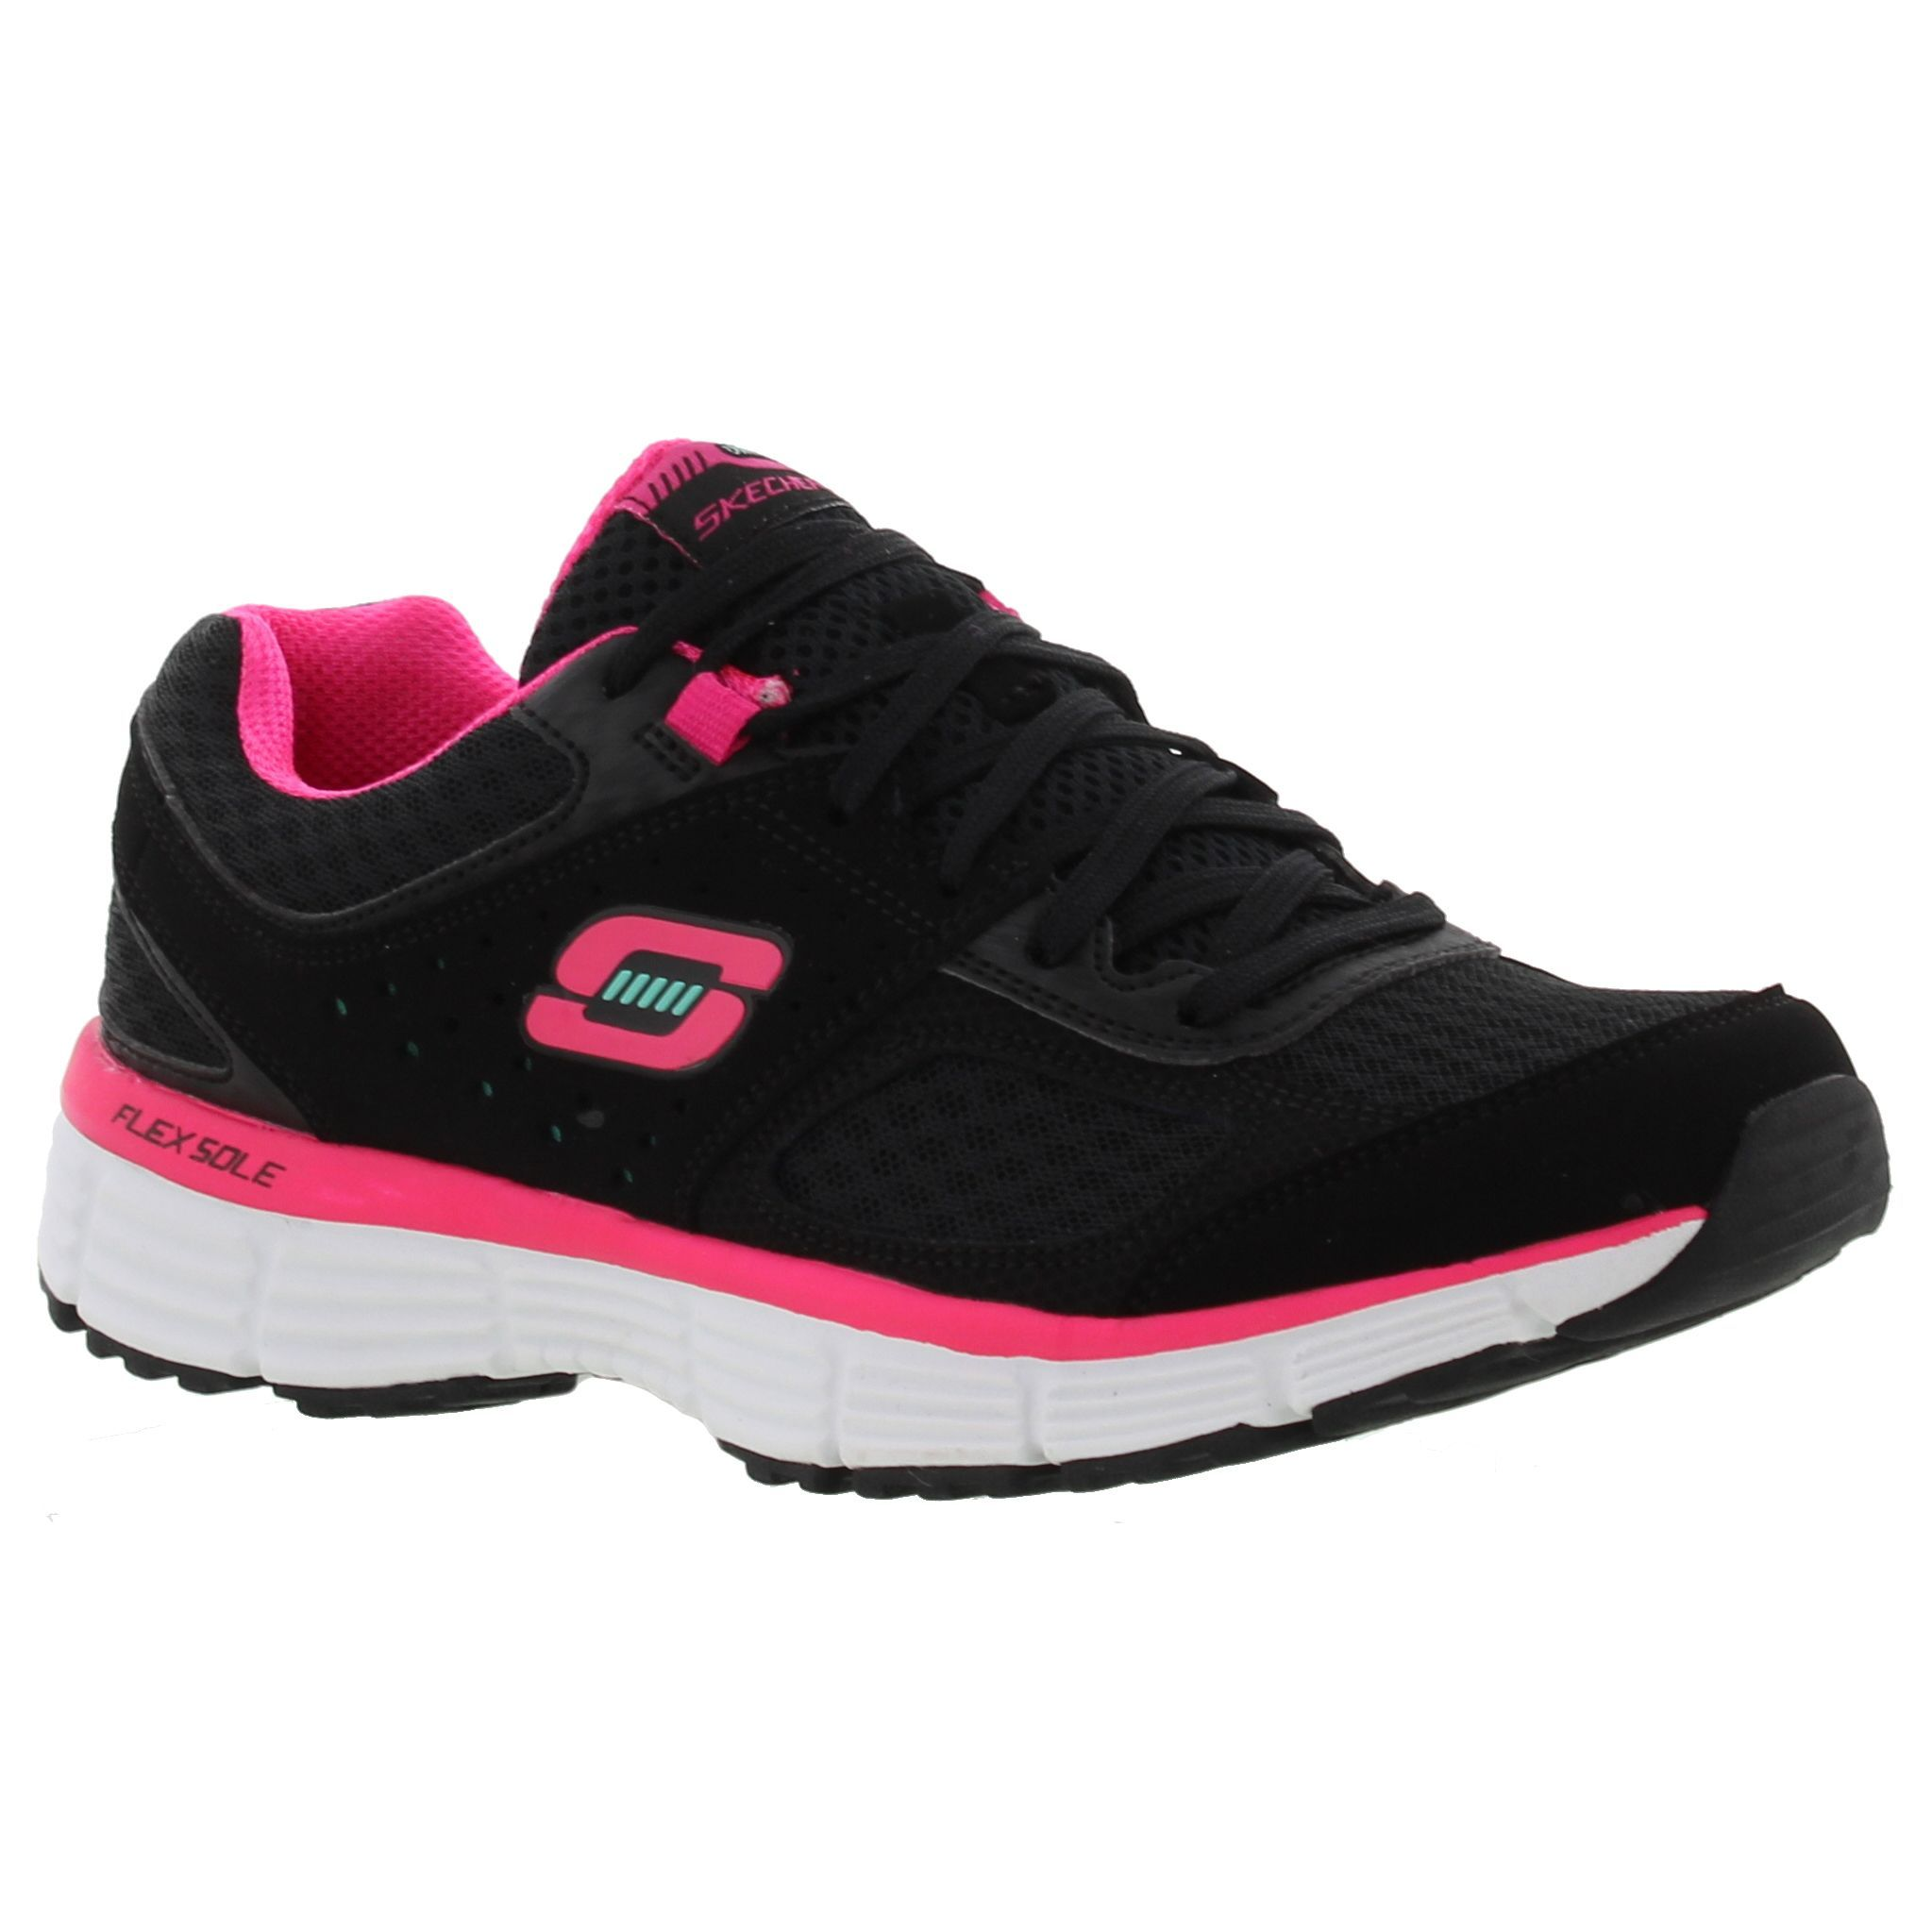 Womens Agility Perfect Fit Trainers Skechers ZBJnng0Uzv